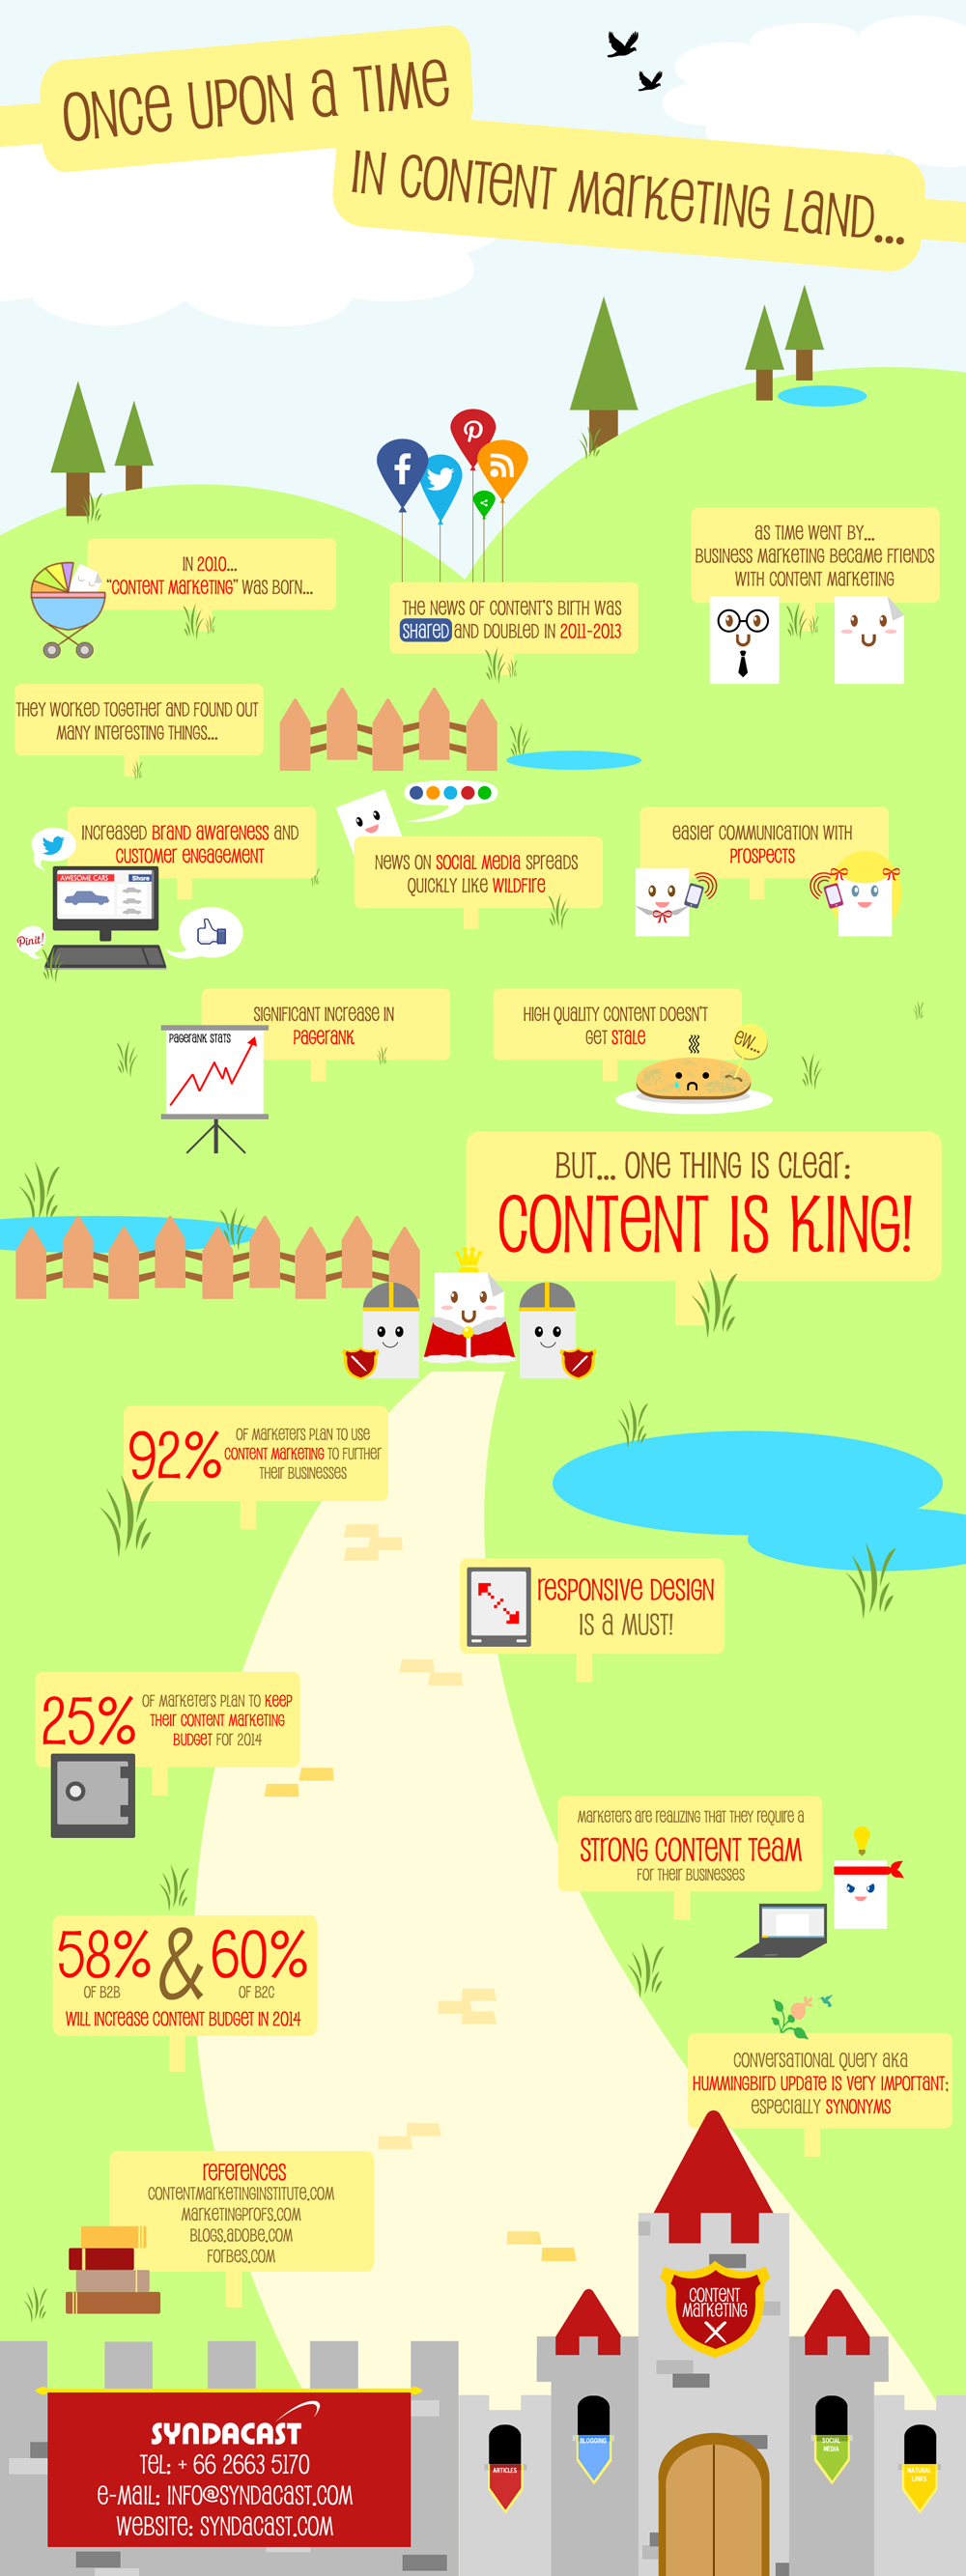 Once-Upon-A-Time-in-Content-Marketing-Land